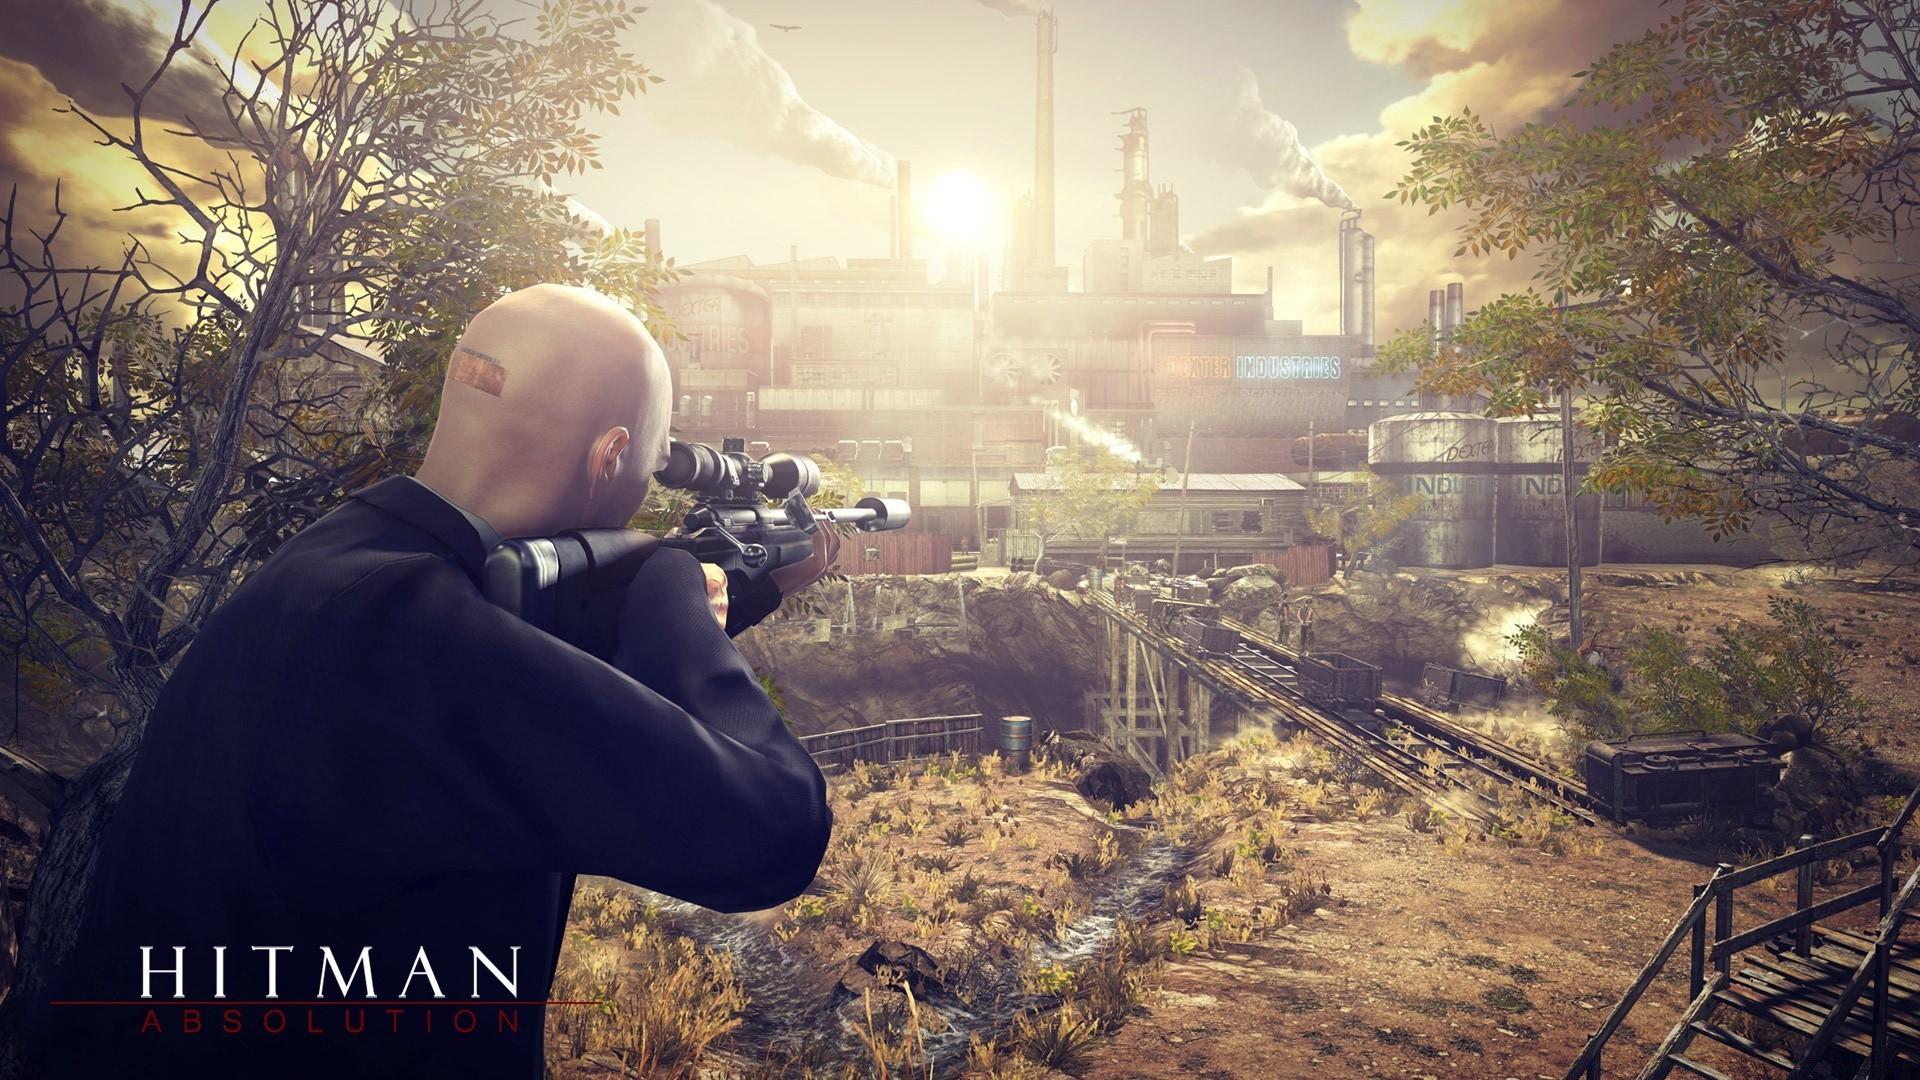 Hitman Absolution Android Wallpapers